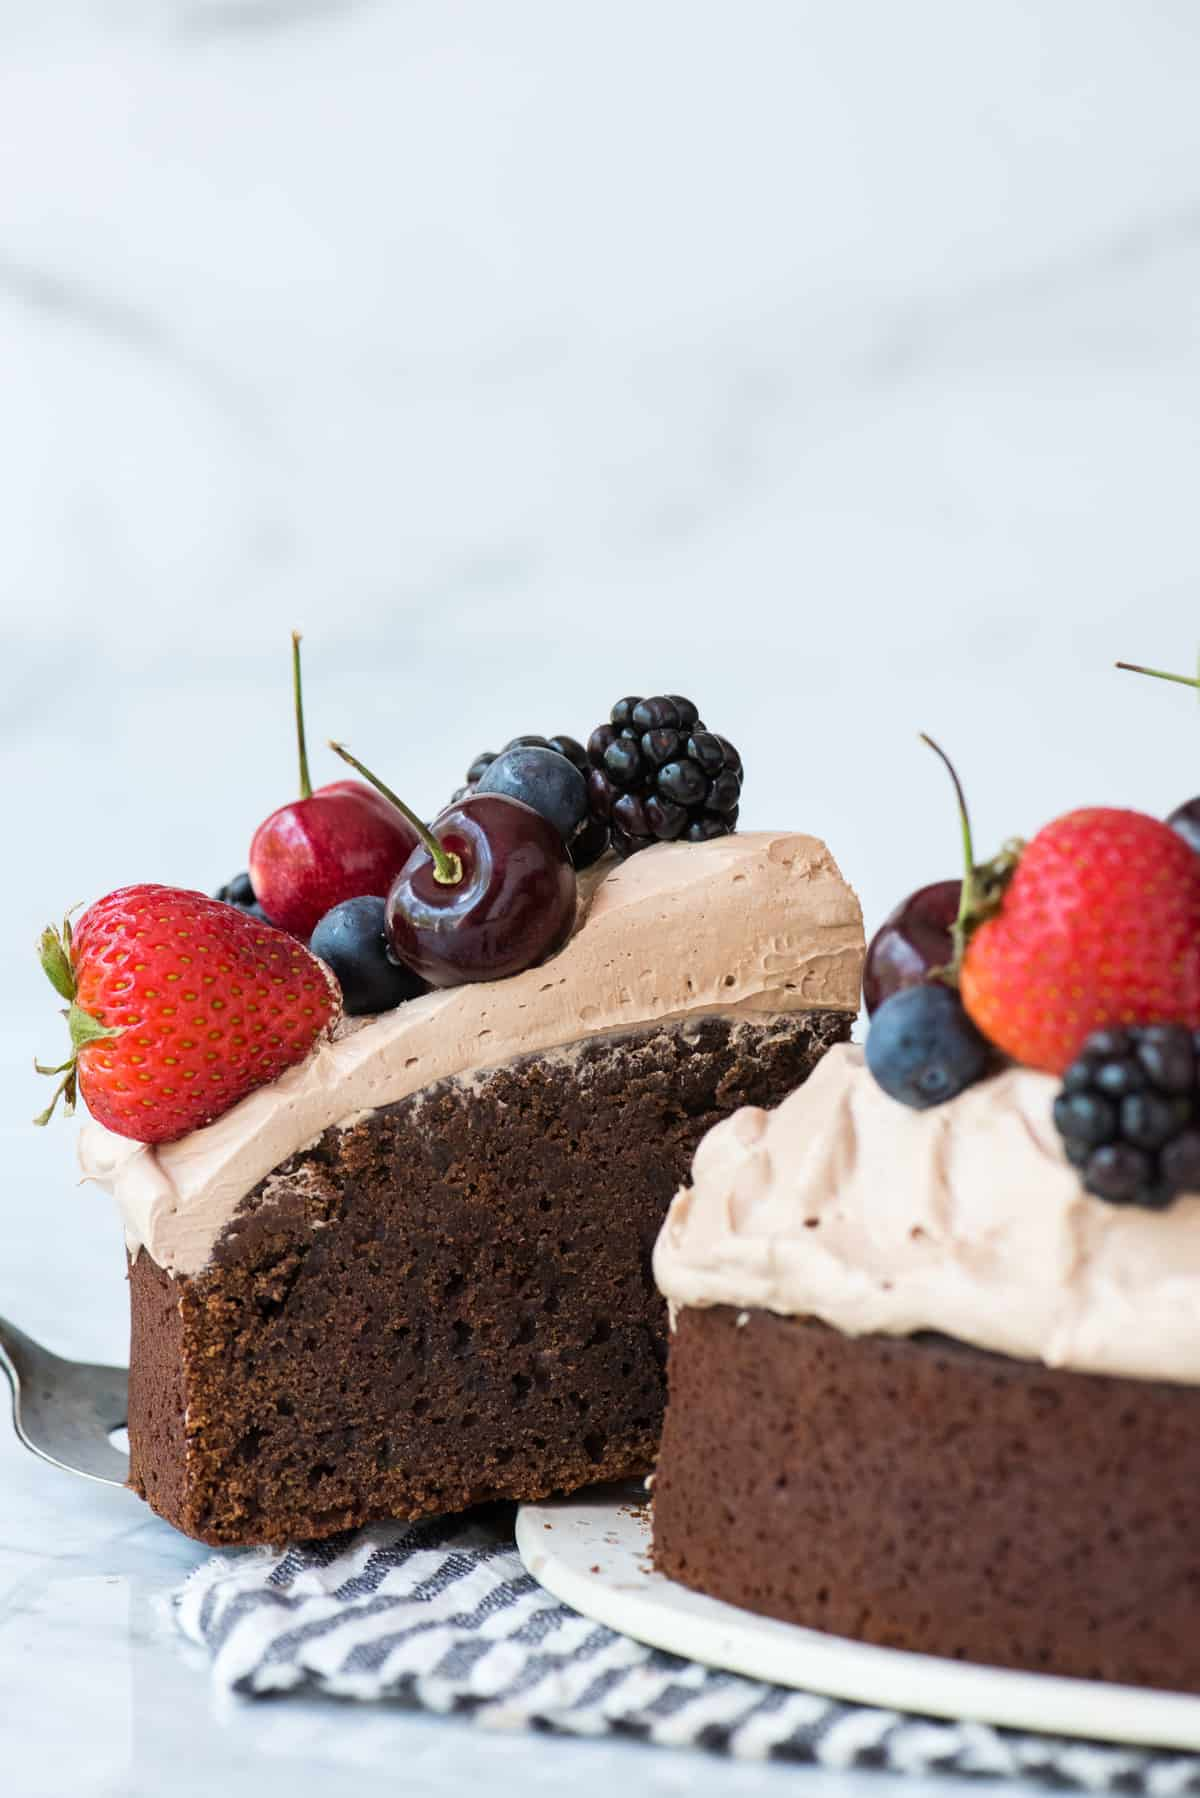 slice of chocolate cake with whipped frosting topped with fresh cherries, strawberries, and blackberries on white plate being removed from cake on white background